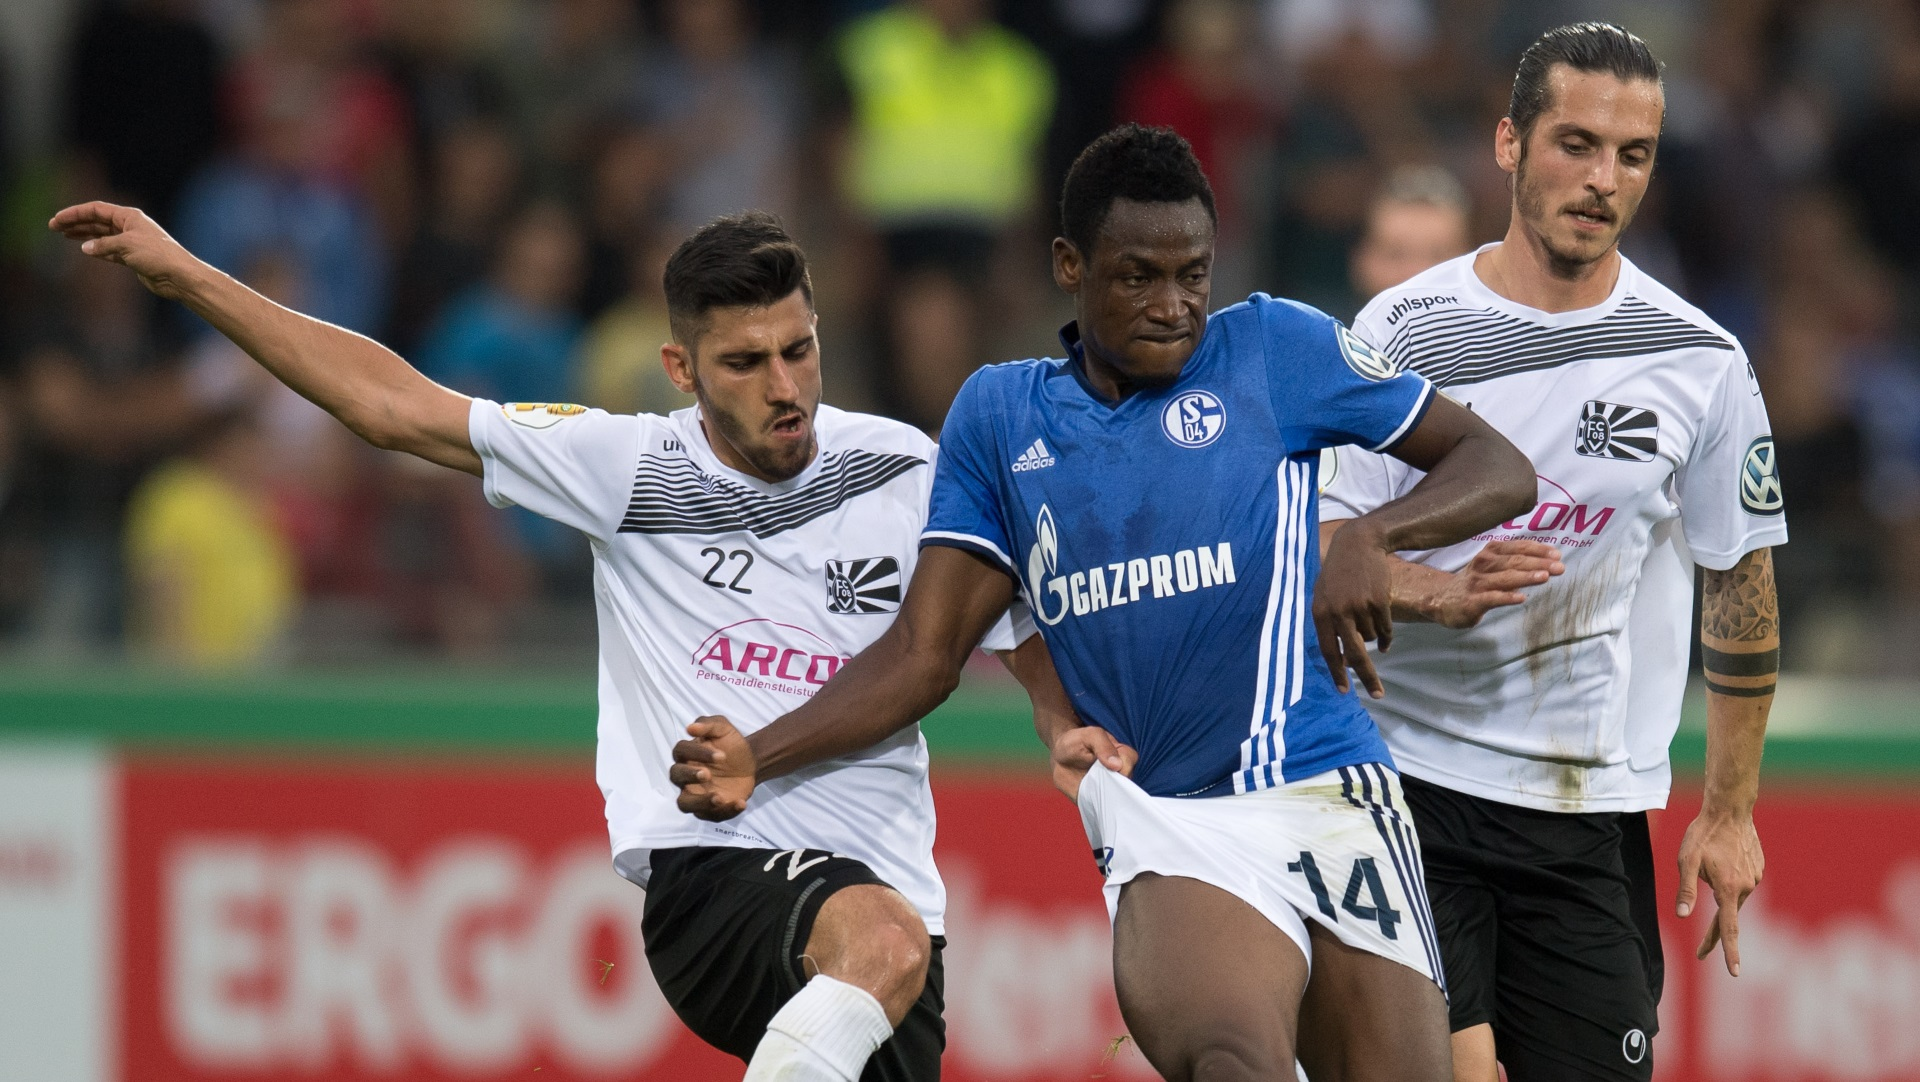 Abdul Rahman Baba of Schalke and Gianluca Serpa of Villingen